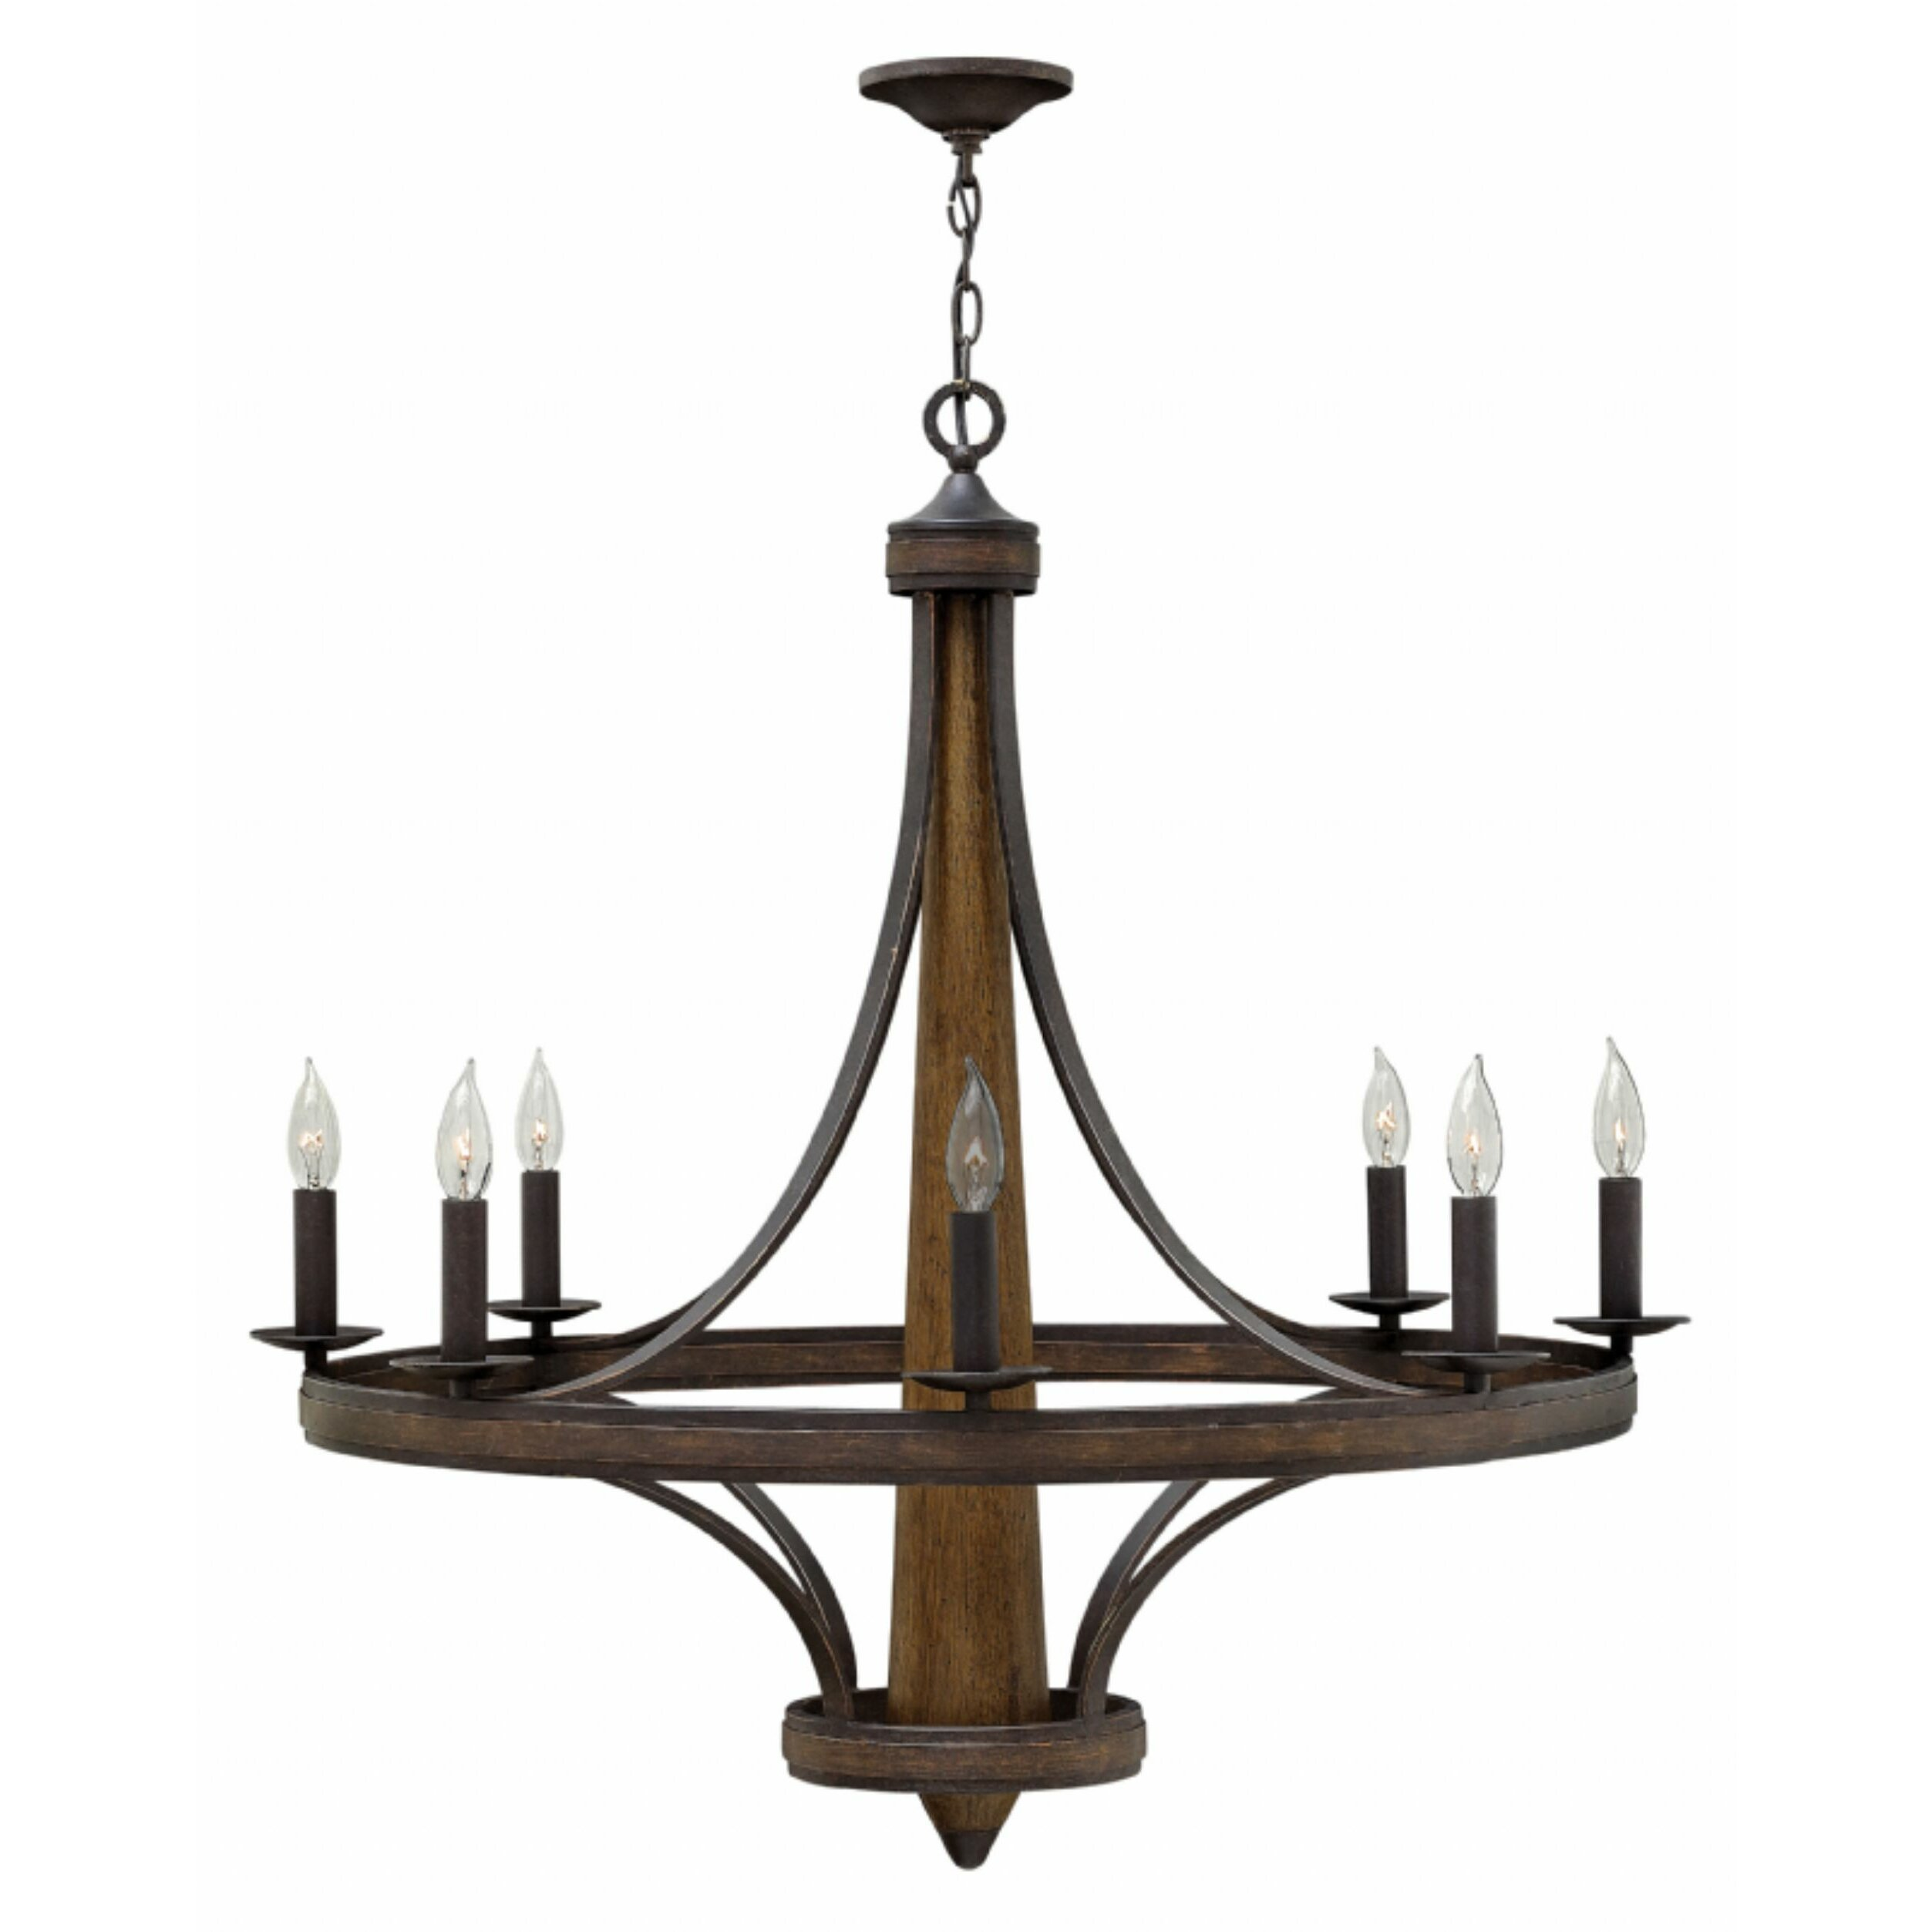 Wayfair Chandelier: Fredrick Ramond Bastille 8 Light Candle Chandelier